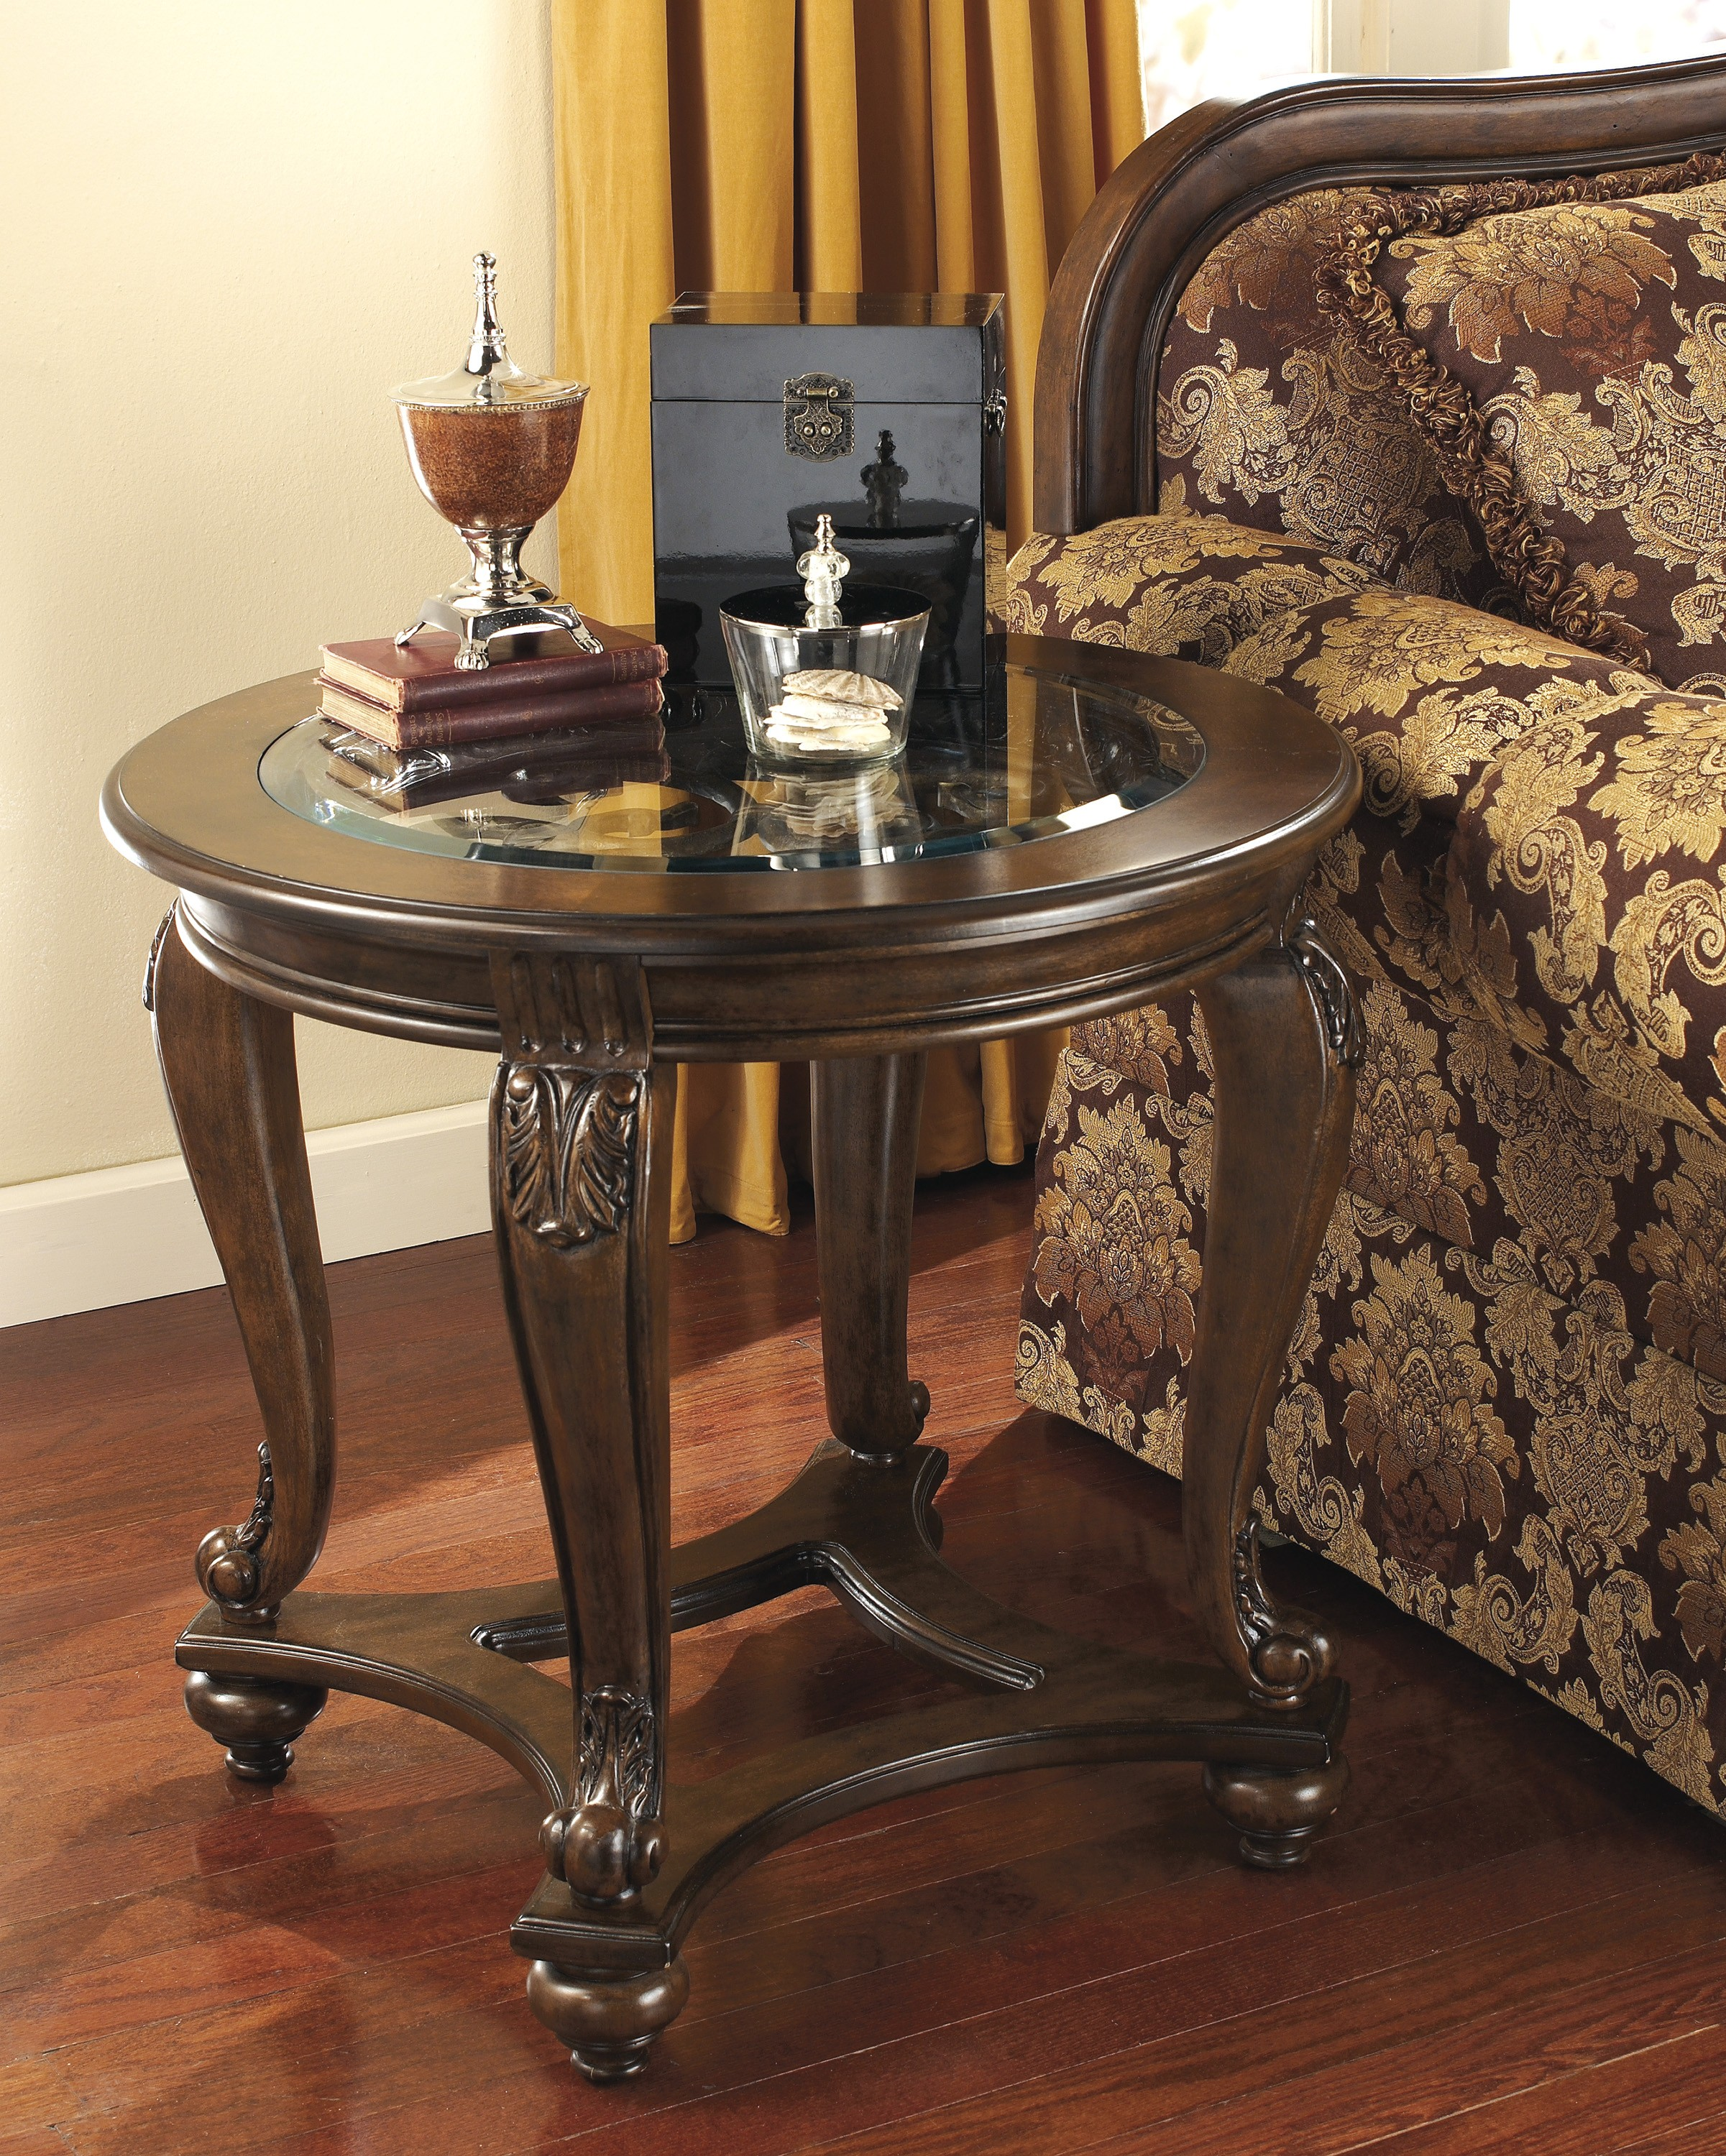 ashley furniture norcastle round end table dark brown porter dining monarch inch patio broyhill cabinet cream distressed tables with drawers bedside pet vintage tier side laura